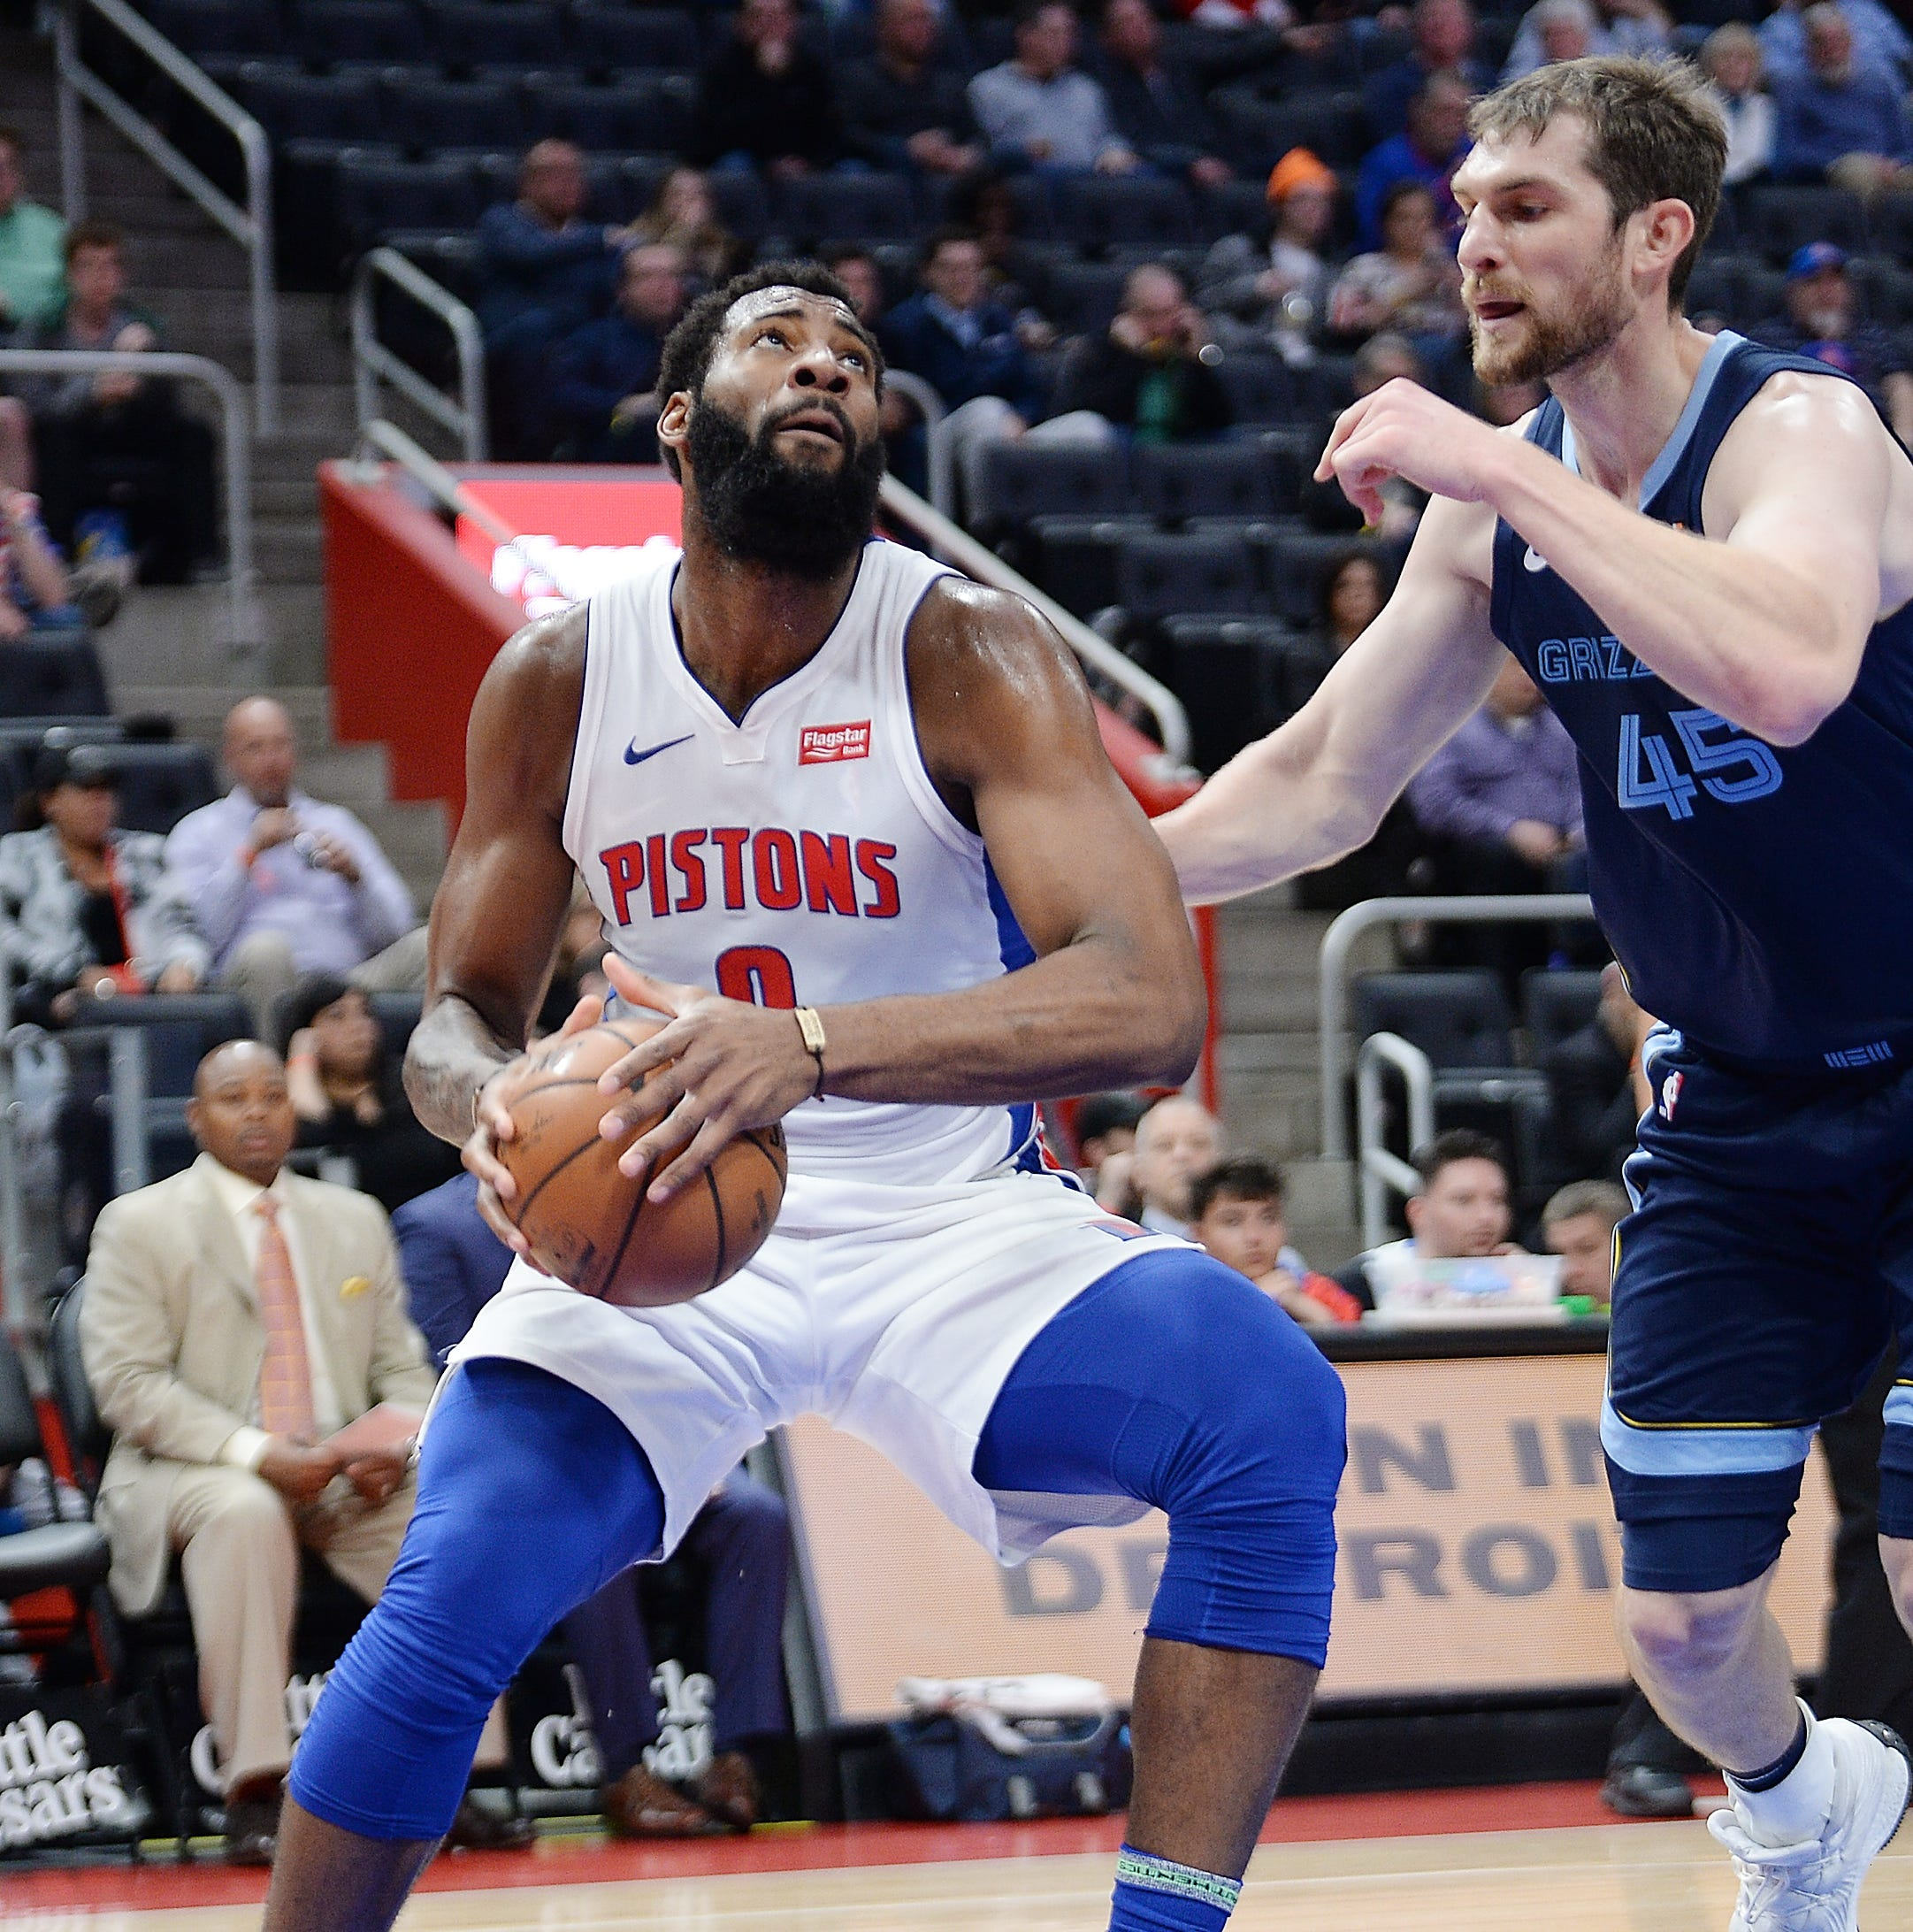 Pistons save face, keep playoff hopes alive in comeback win over depleted Grizzlies